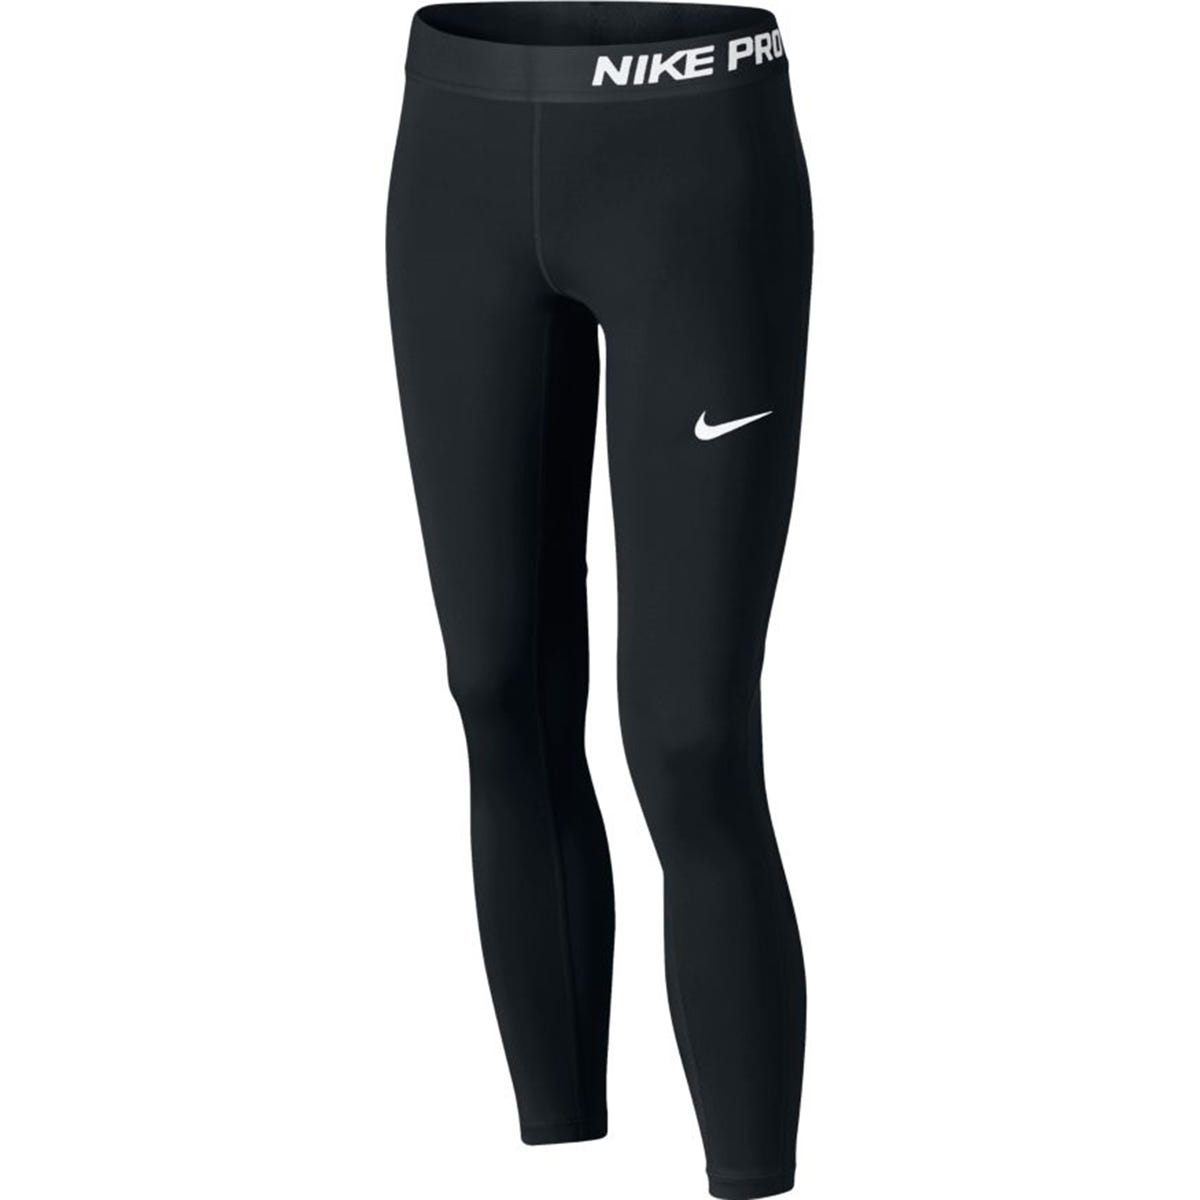 Nike Pro Girl's Training Tights